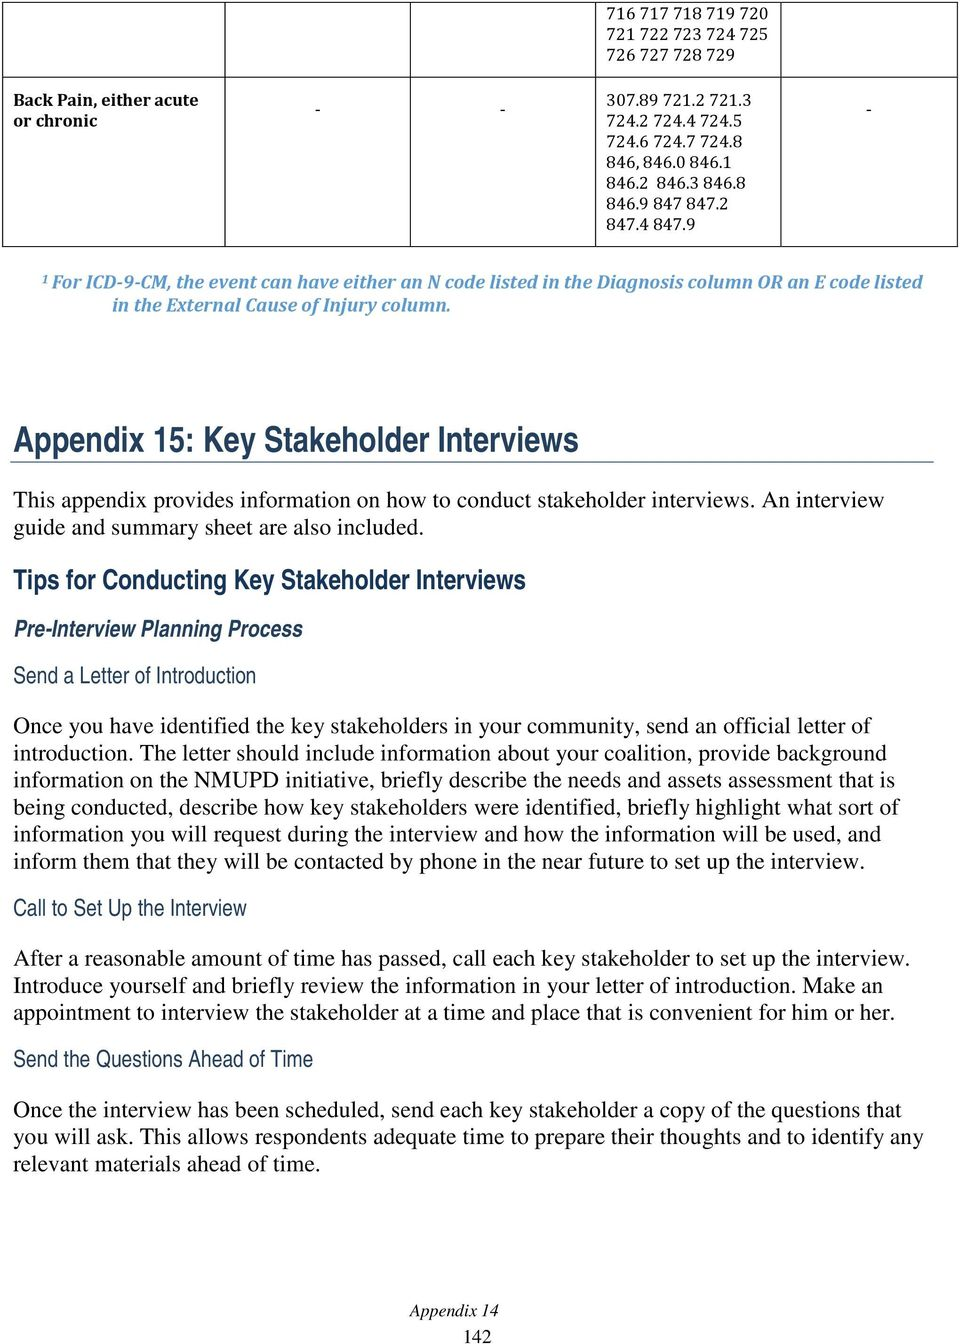 Appendix 15: Key Stakeholder Interviews This appendix provides information on how to conduct stakeholder interviews. An interview guide and summary sheet are also included.